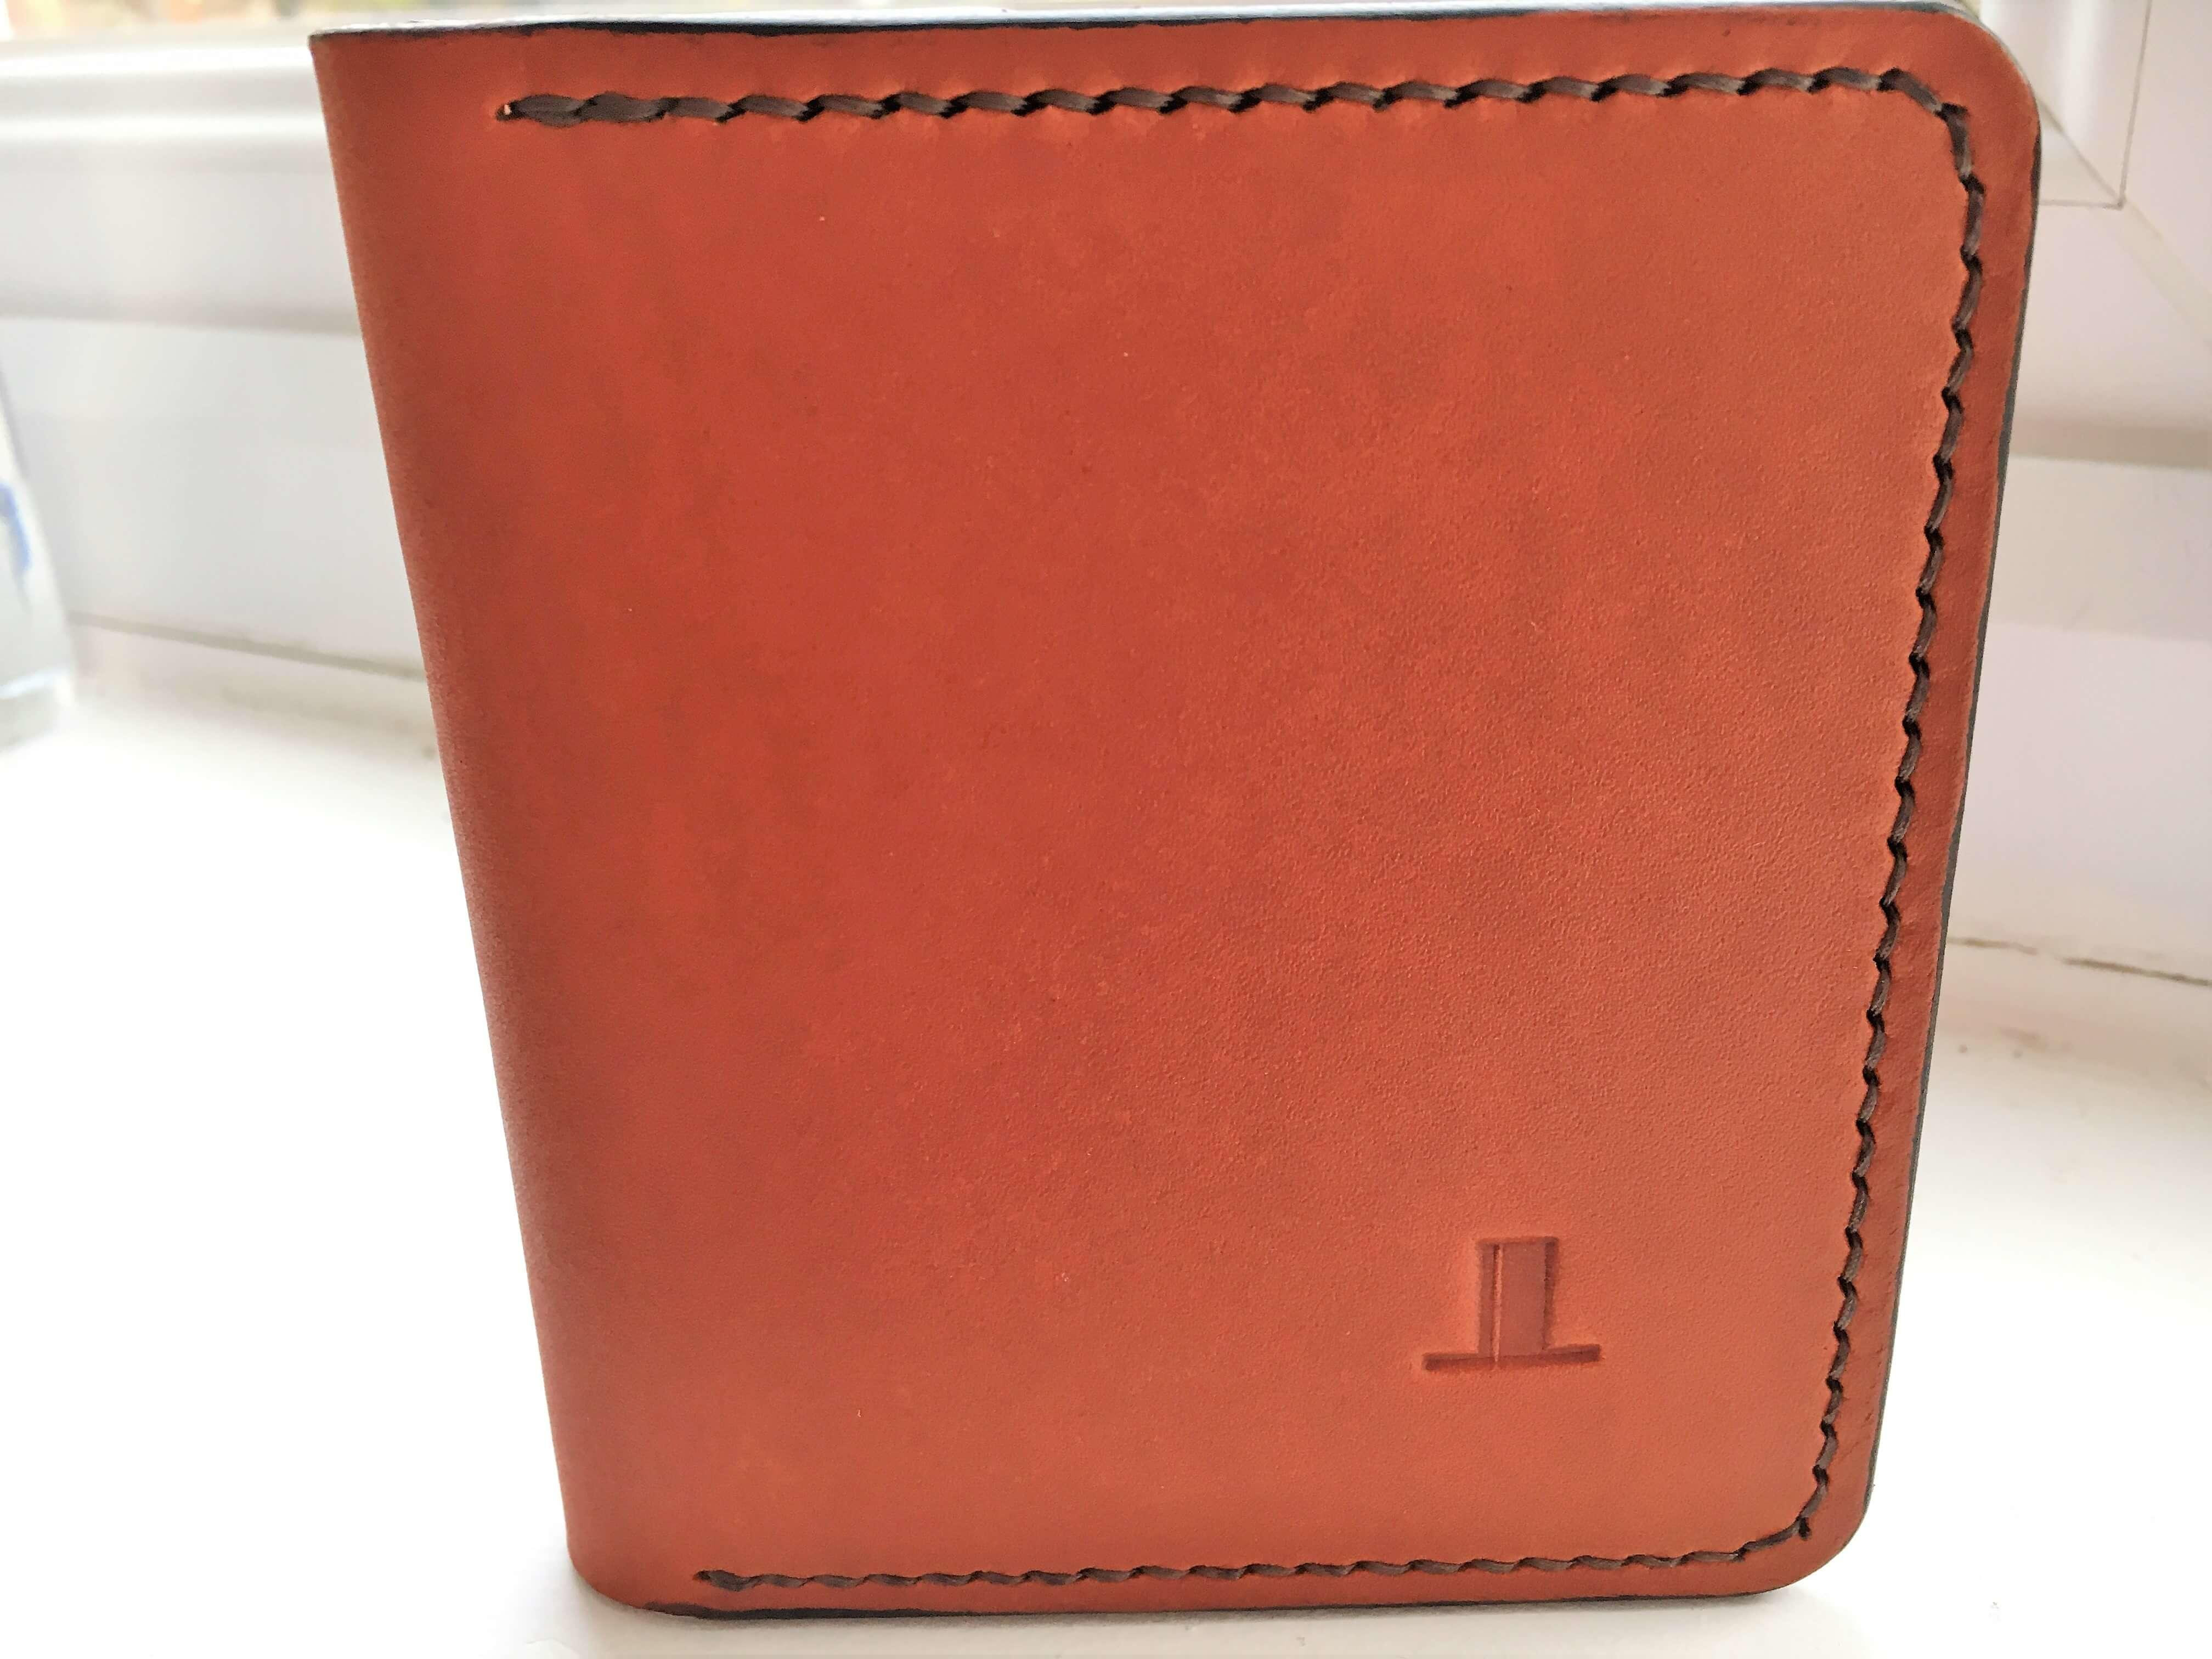 ISAMBARD Clifton Credit Card Wallet, in Cognac Natural Veg Tanne